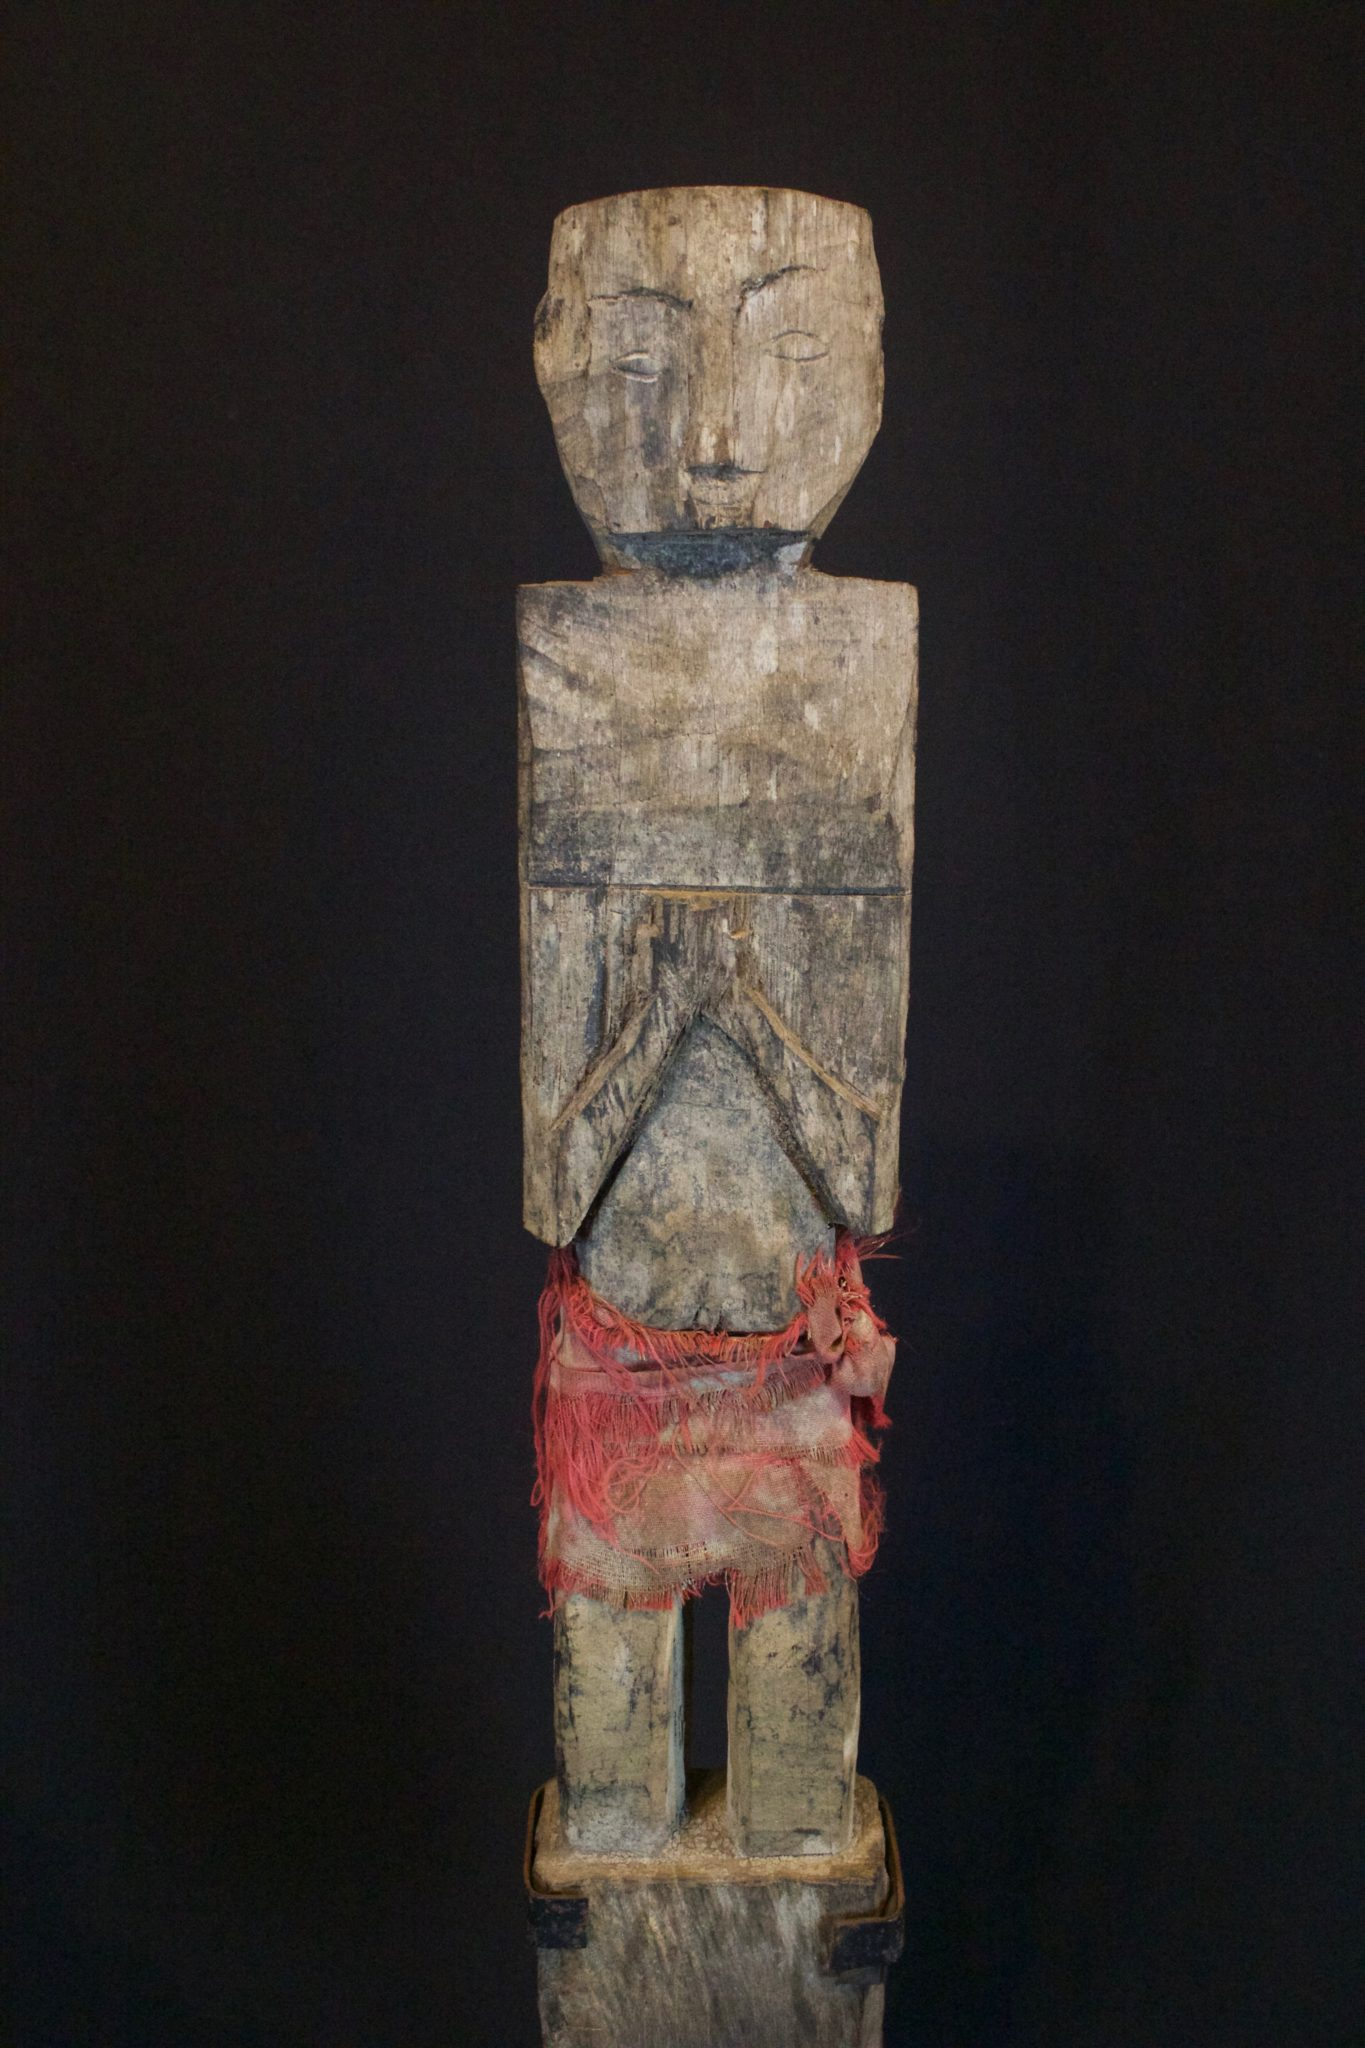 "Shaman Figure with Red Skirt, Kalimantan, Borneo, Indonesia, Dayak, Early 20th c, Wood, cotton cloth. Used for healing and protection. 20"" x 4"" x 2"", $800."